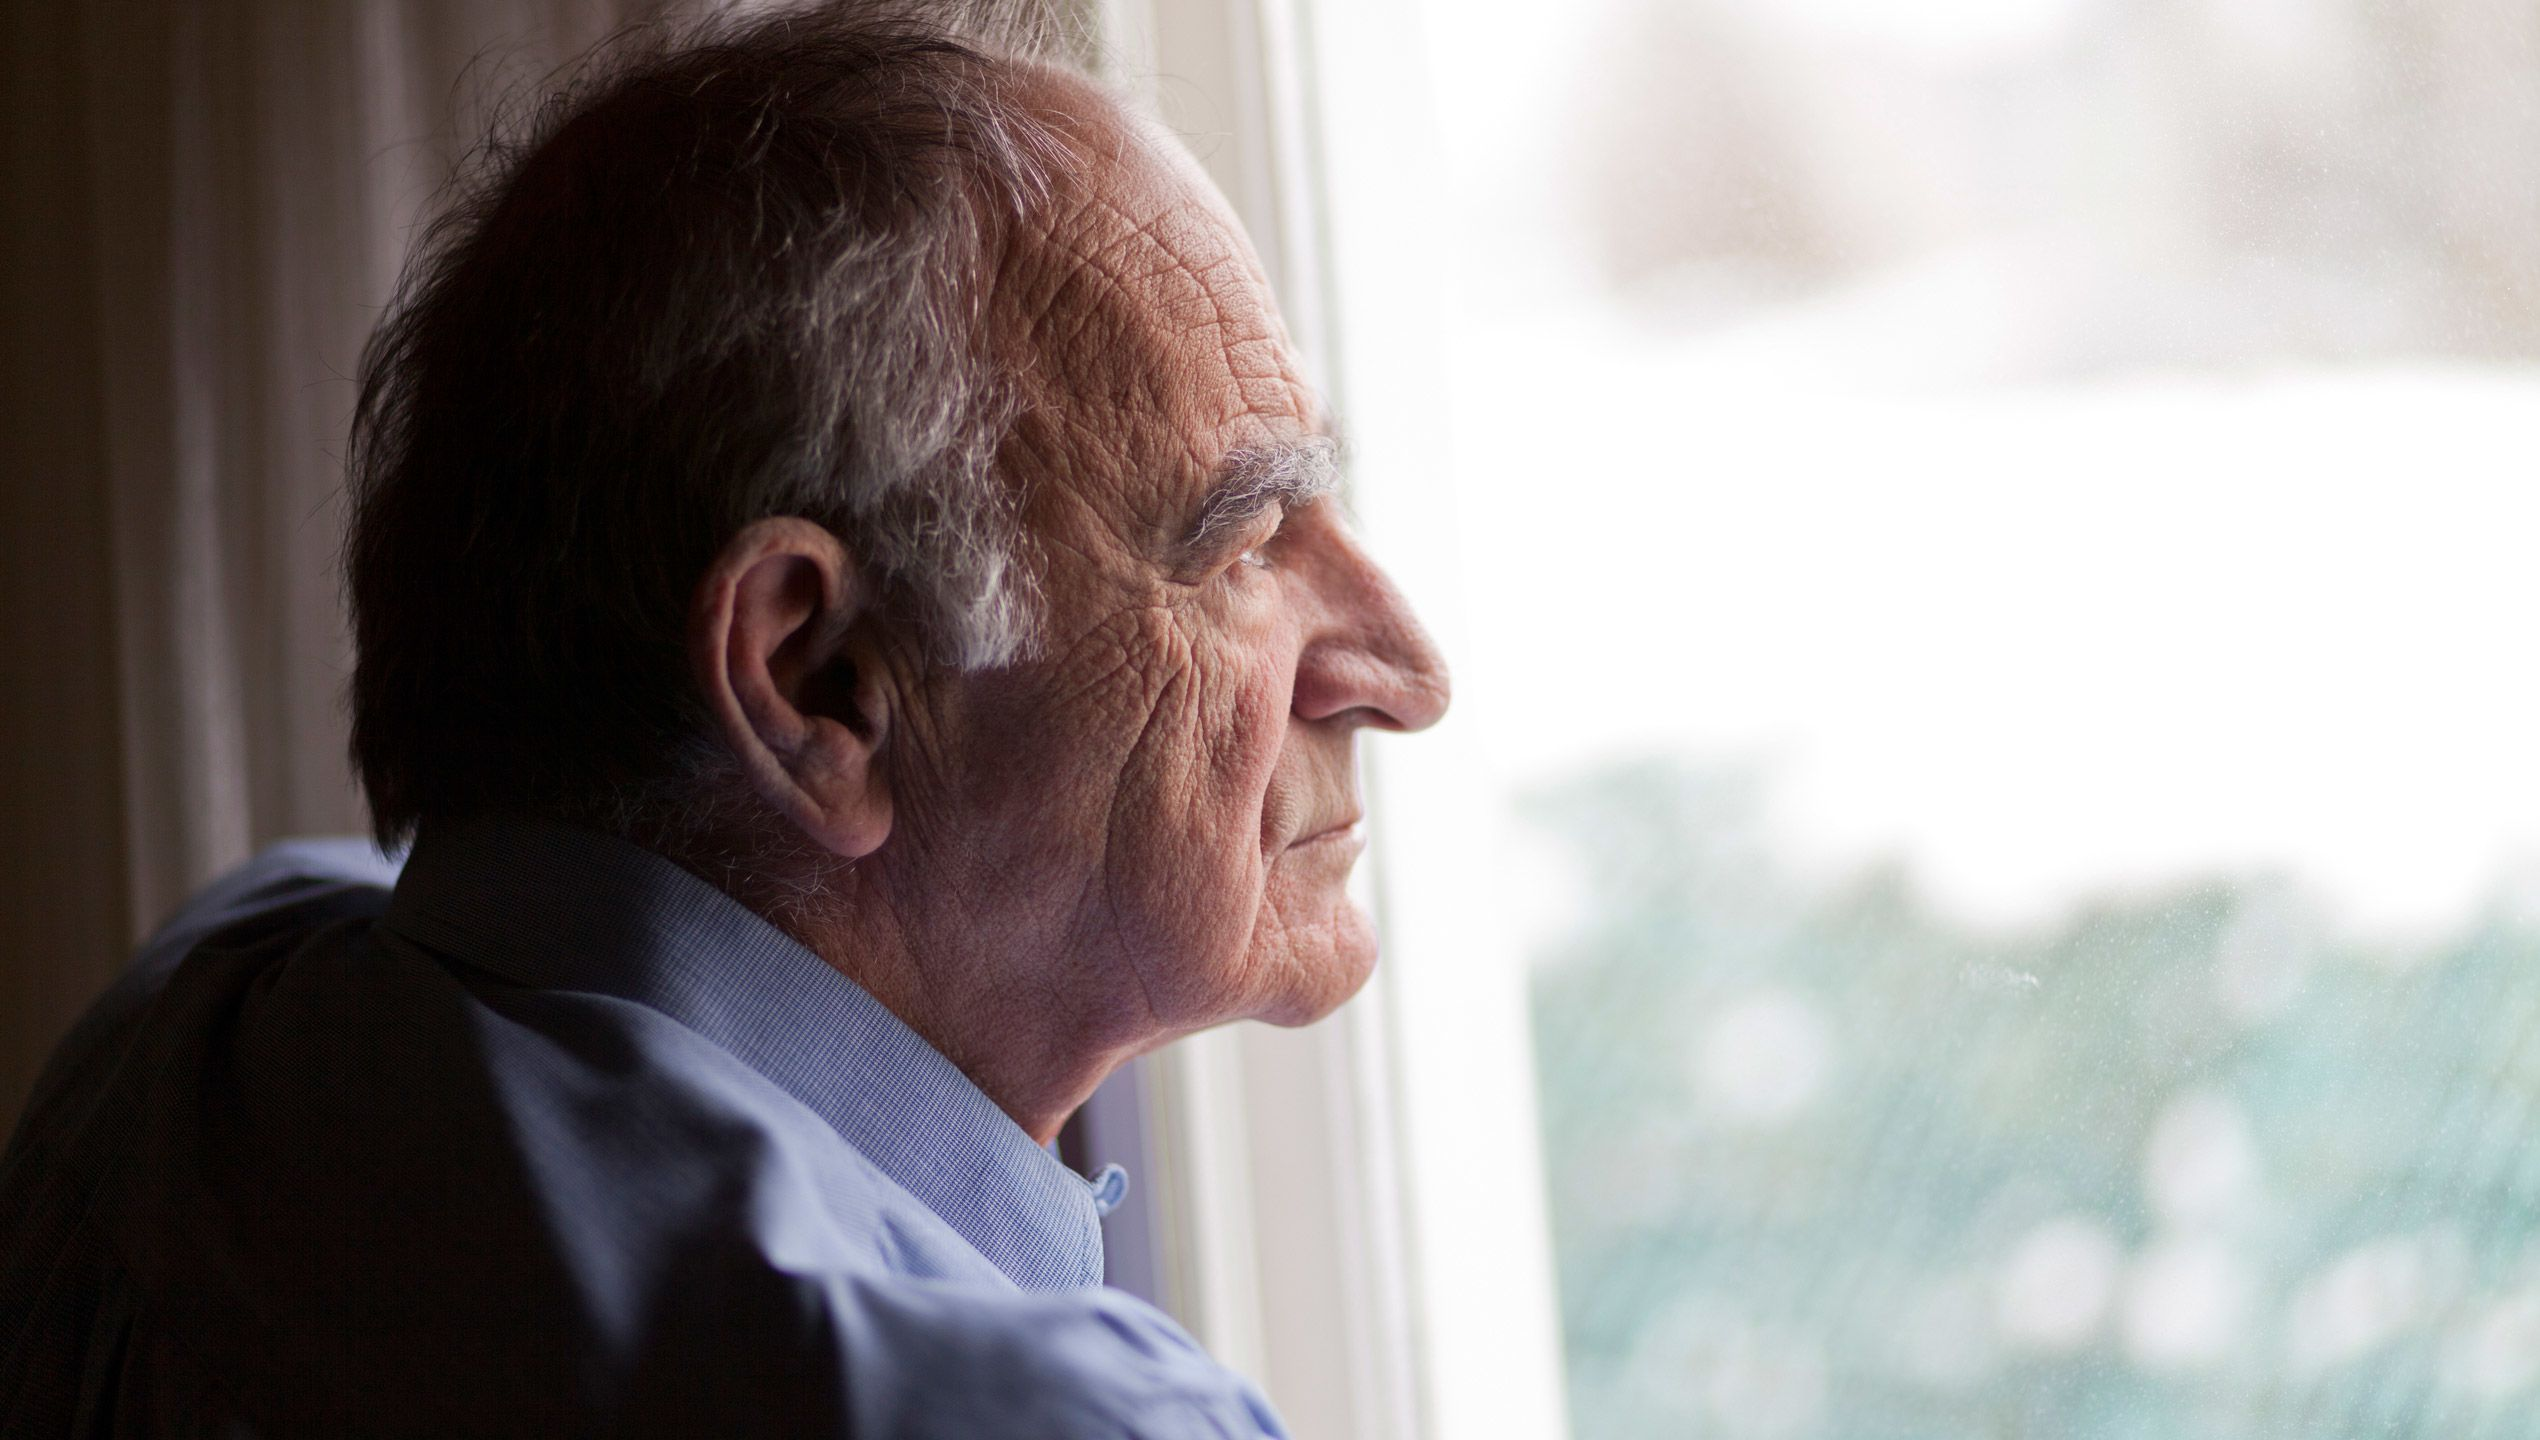 7 Surprising Signs of Dementia